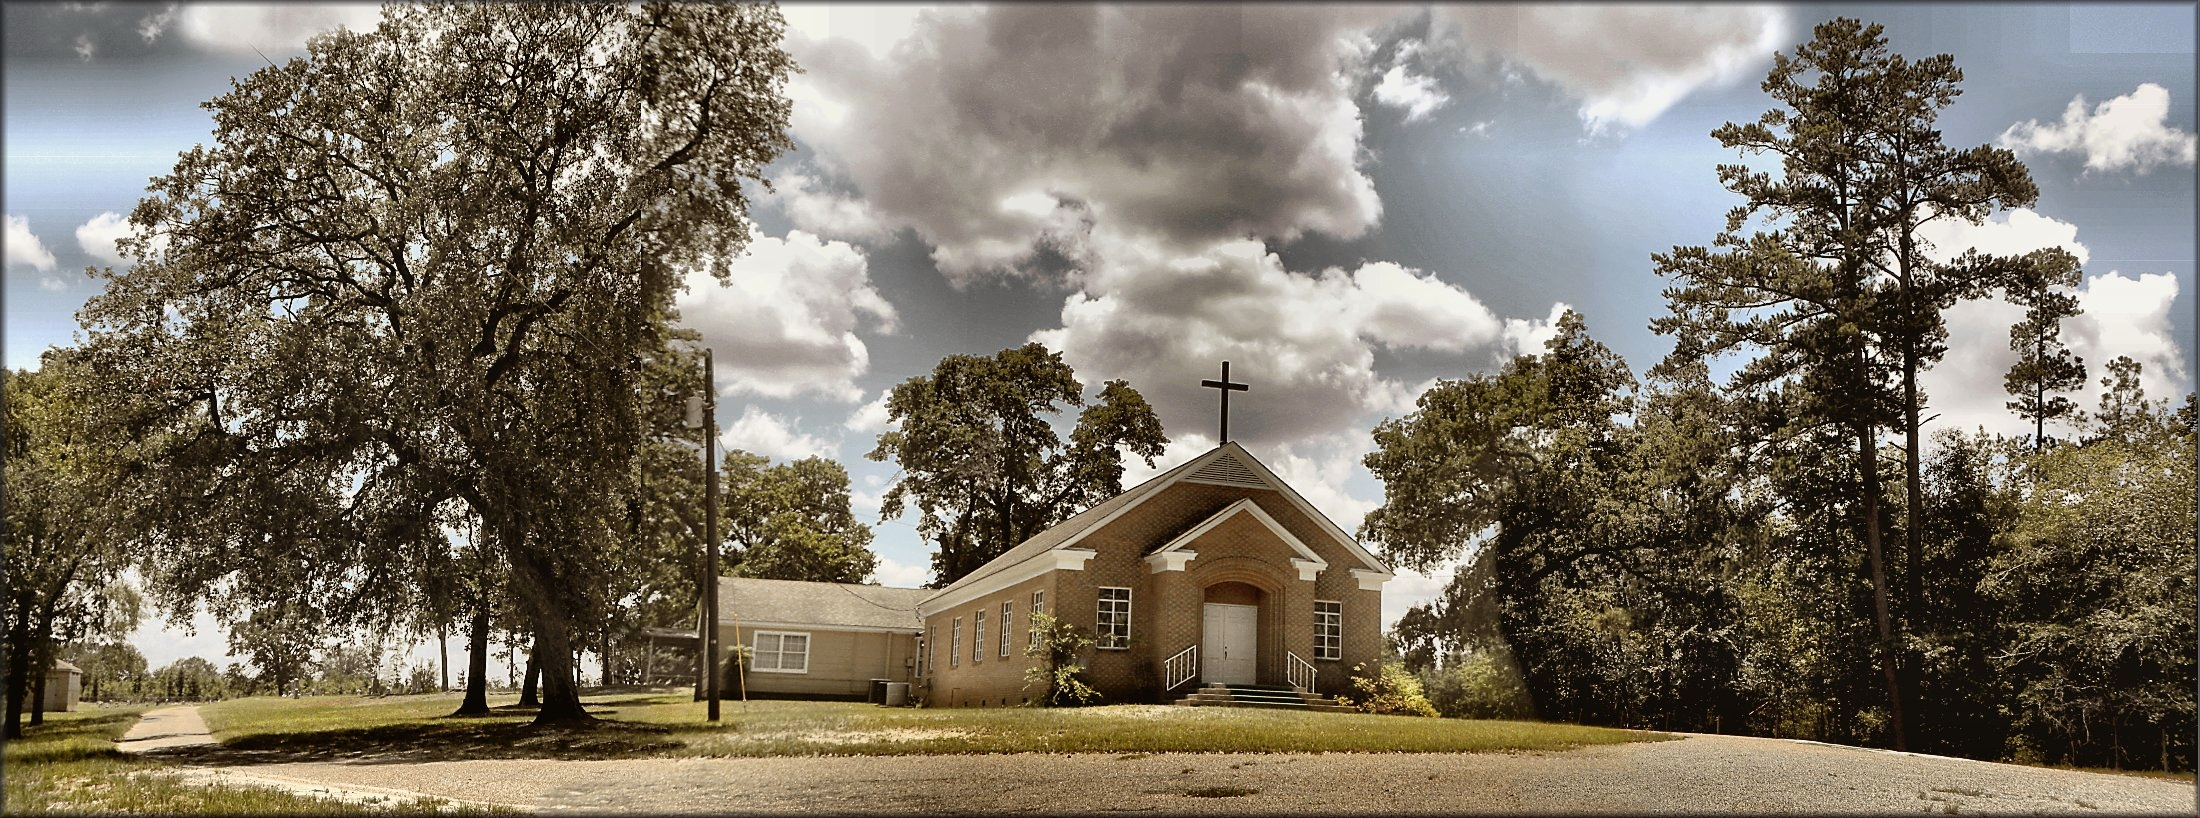 Fairview Methodist Church in Historic Nacogdoches County